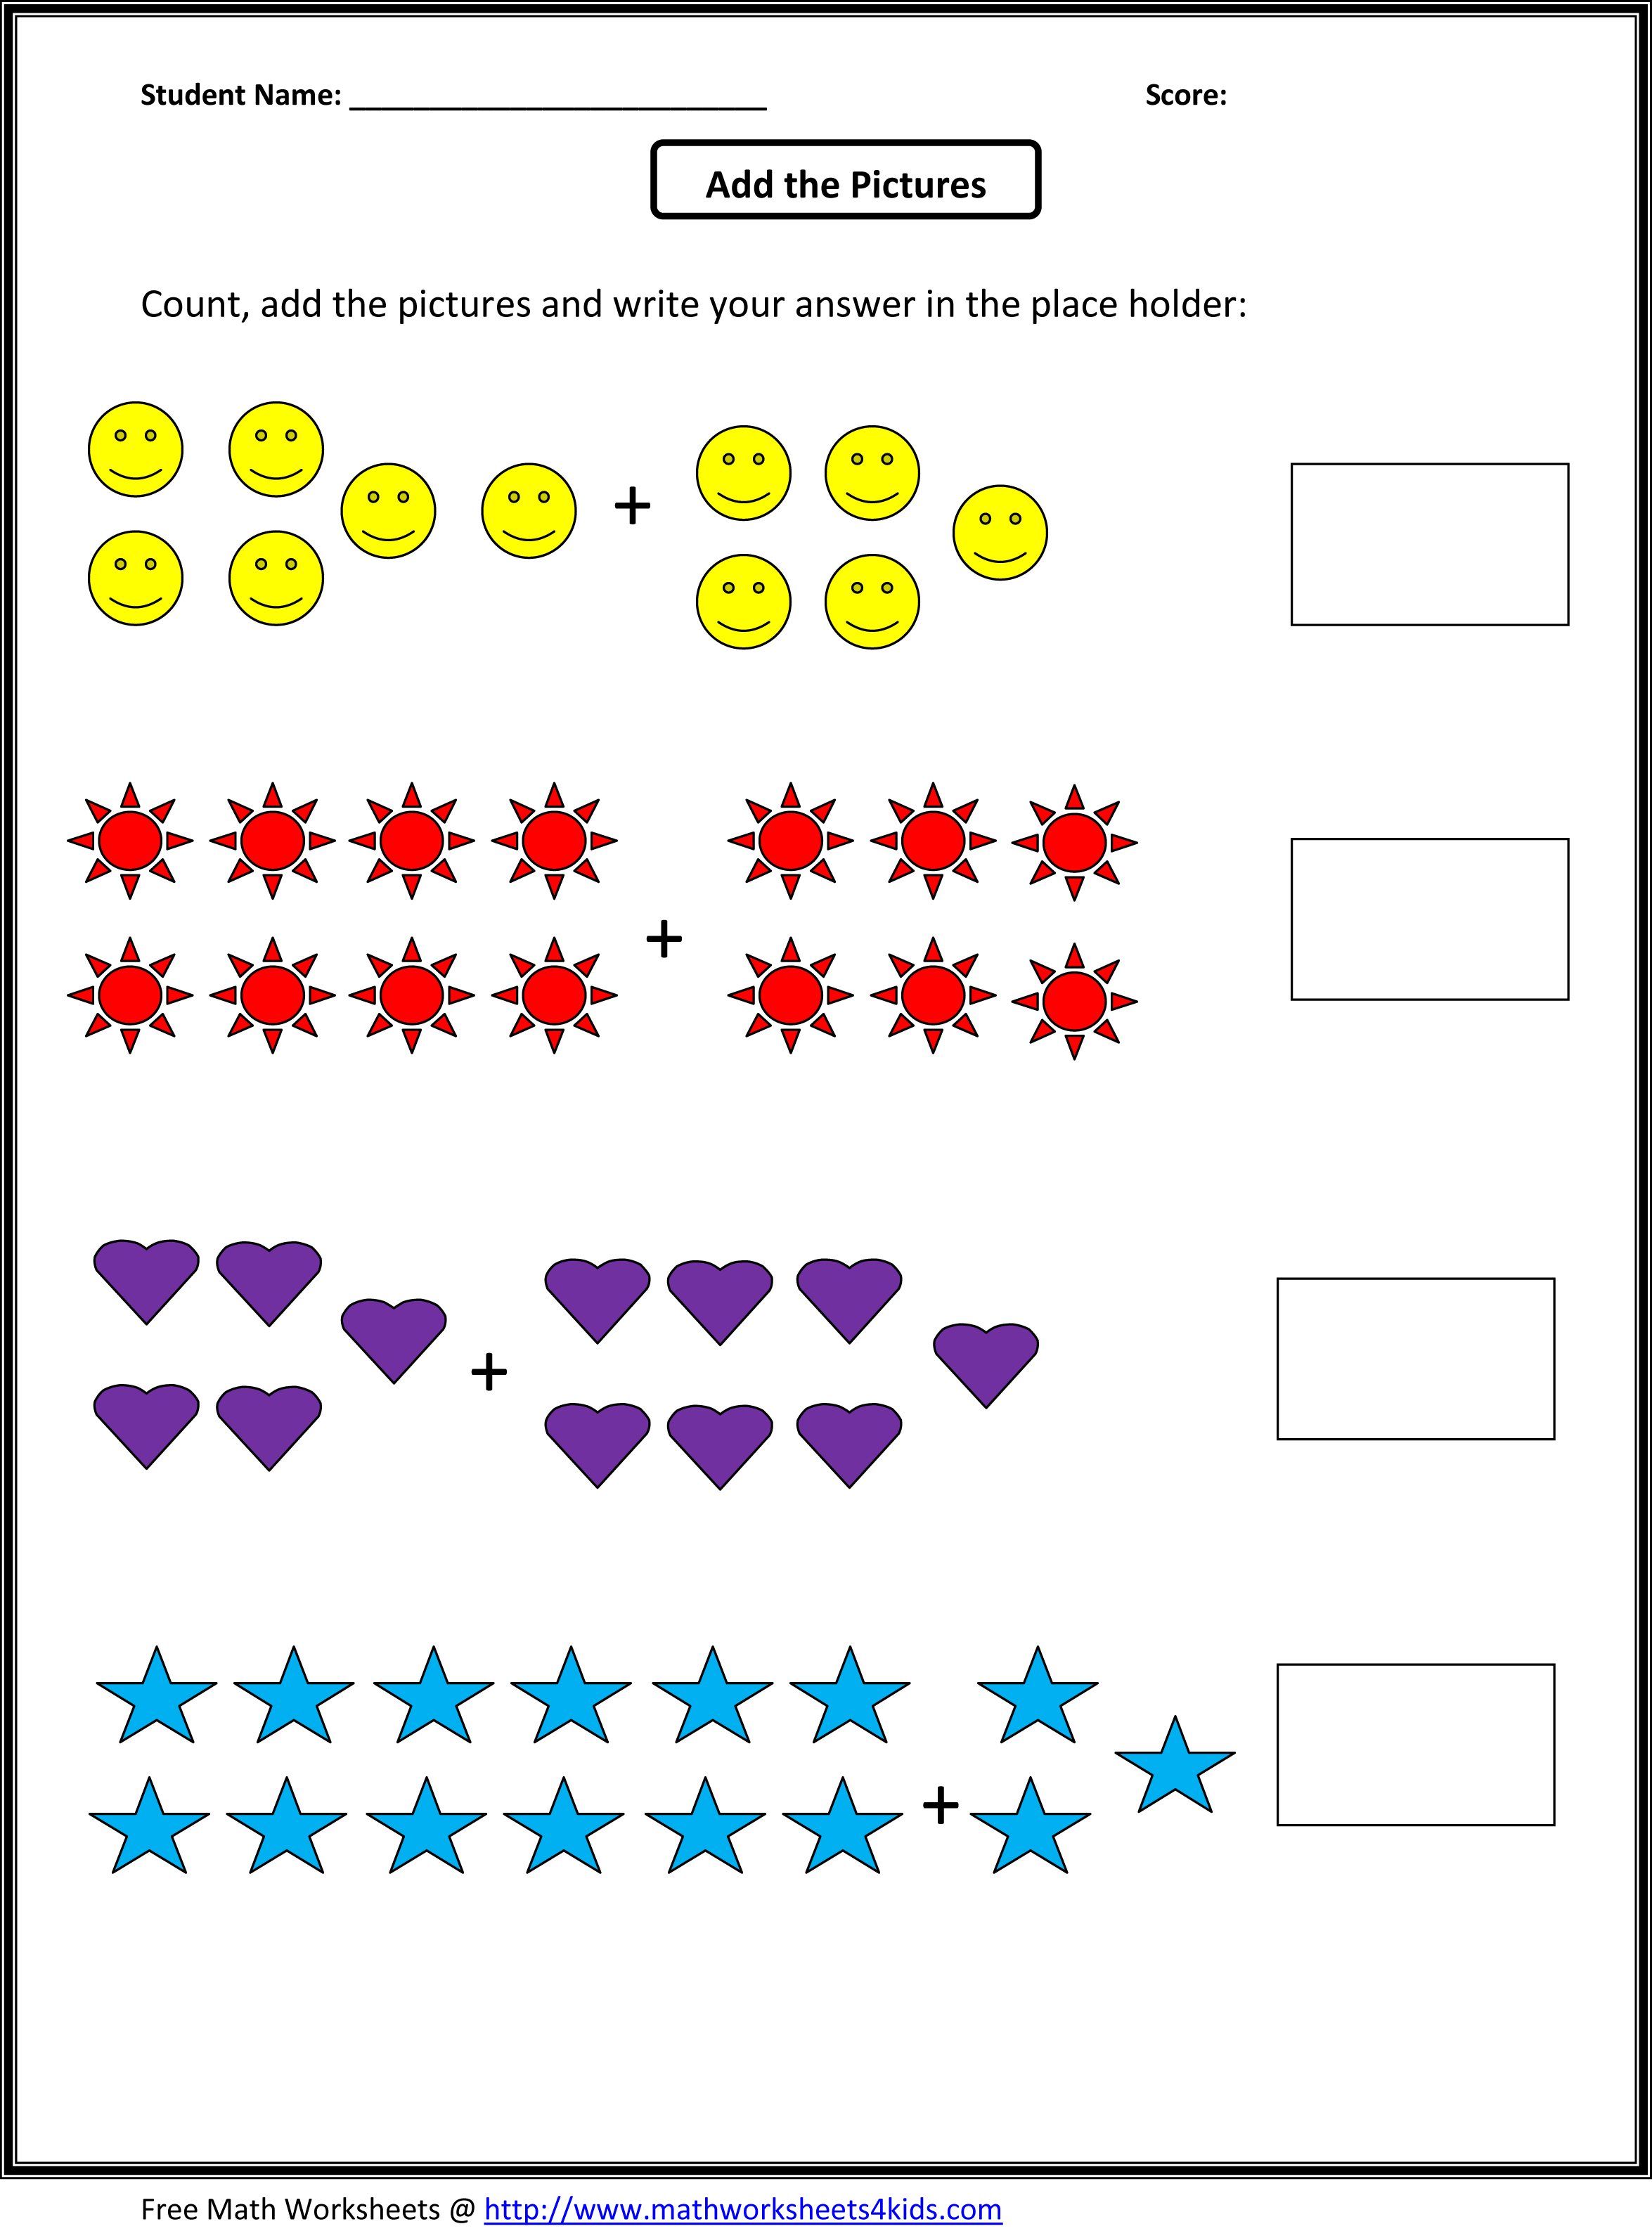 Proatmealus  Sweet Grade  Maths Worksheet  Reocurent With Glamorous Math Worksheets For St Grade Free  Reocurent With Amazing Slavery Worksheets Also Tales Of A Fourth Grade Nothing Worksheets In Addition Kindergarten Sight Words Worksheet And French Revolution Worksheet As Well As Holt Mcdougal Worksheet Answers Additionally Similar Figures Worksheets From Reocurentcom With Proatmealus  Glamorous Grade  Maths Worksheet  Reocurent With Amazing Math Worksheets For St Grade Free  Reocurent And Sweet Slavery Worksheets Also Tales Of A Fourth Grade Nothing Worksheets In Addition Kindergarten Sight Words Worksheet From Reocurentcom